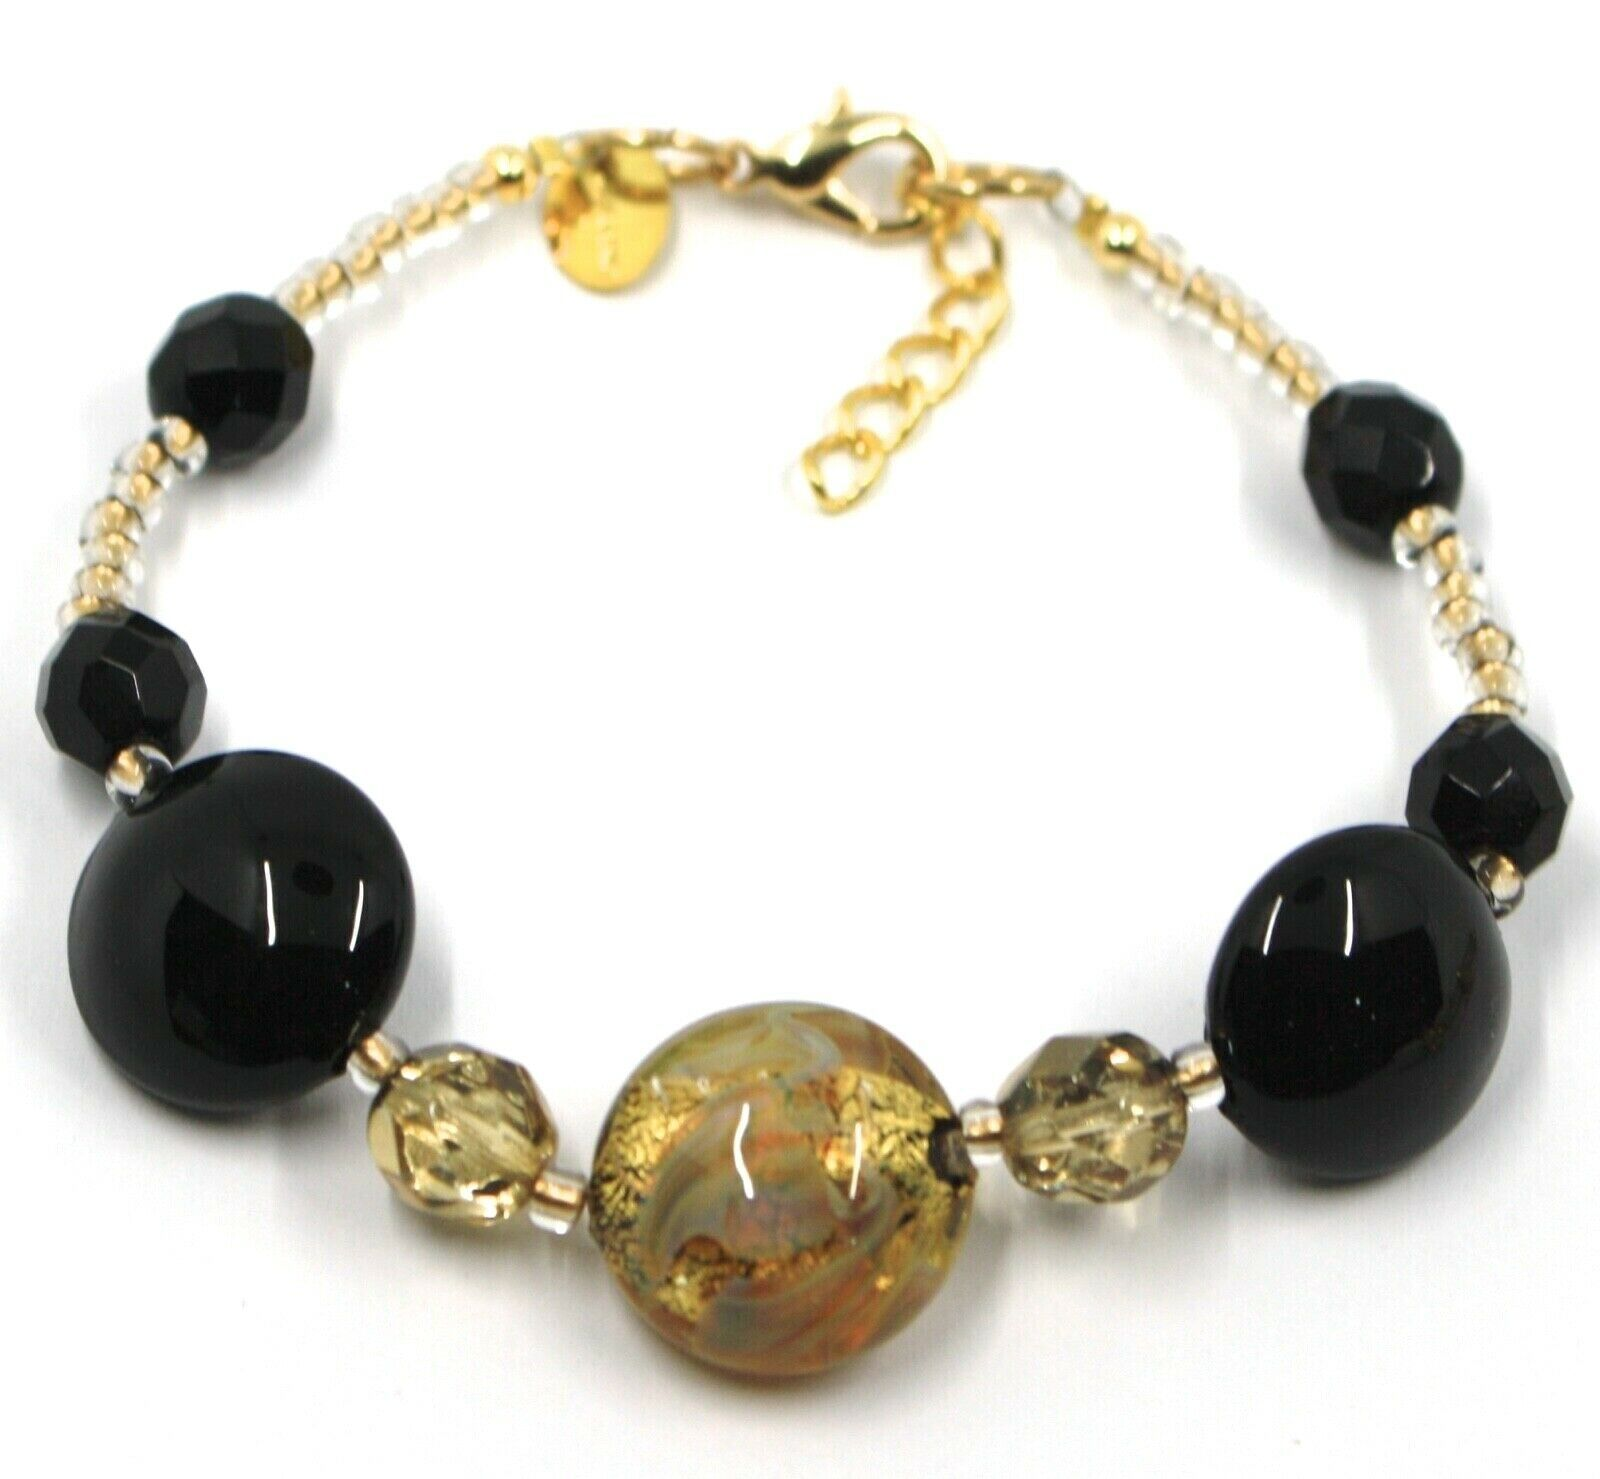 BRACELET BLACK YELLOW MURANO DISC GLASS & GOLD LEAF, MADE IN ITALY, 20cm, 7.9""